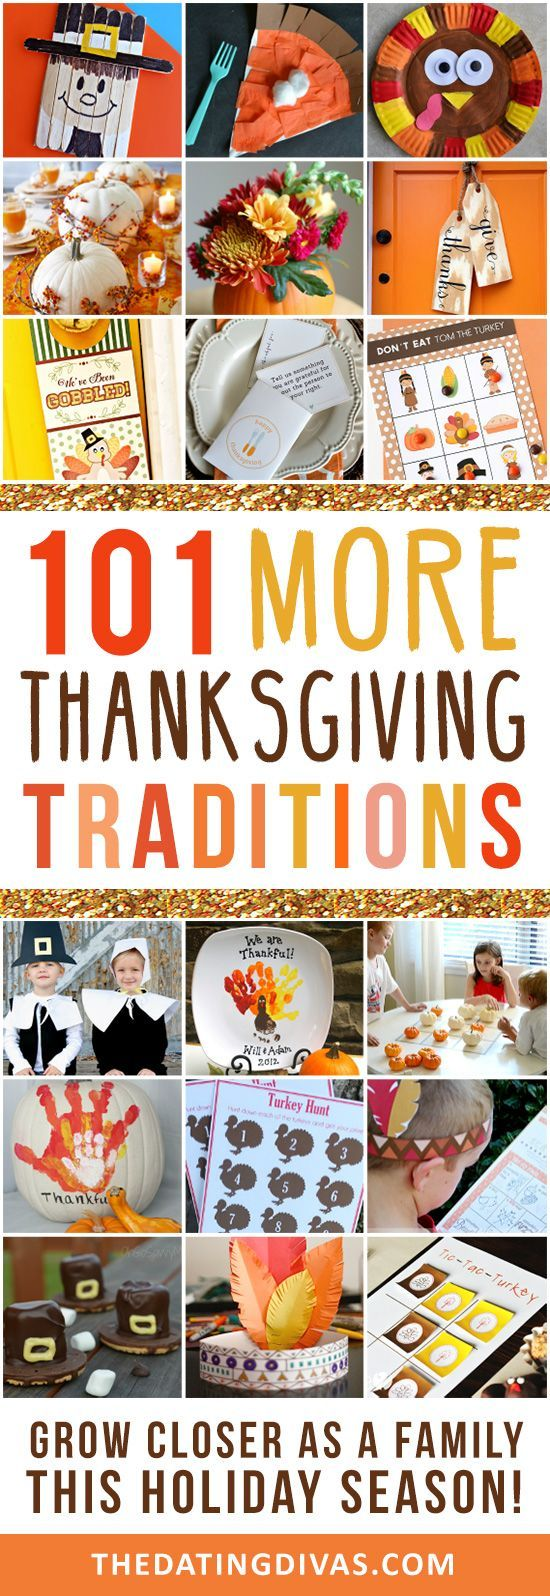 101 MORE of the best Thanksgiving Traditions from The Dating Divas! I love these ideas!